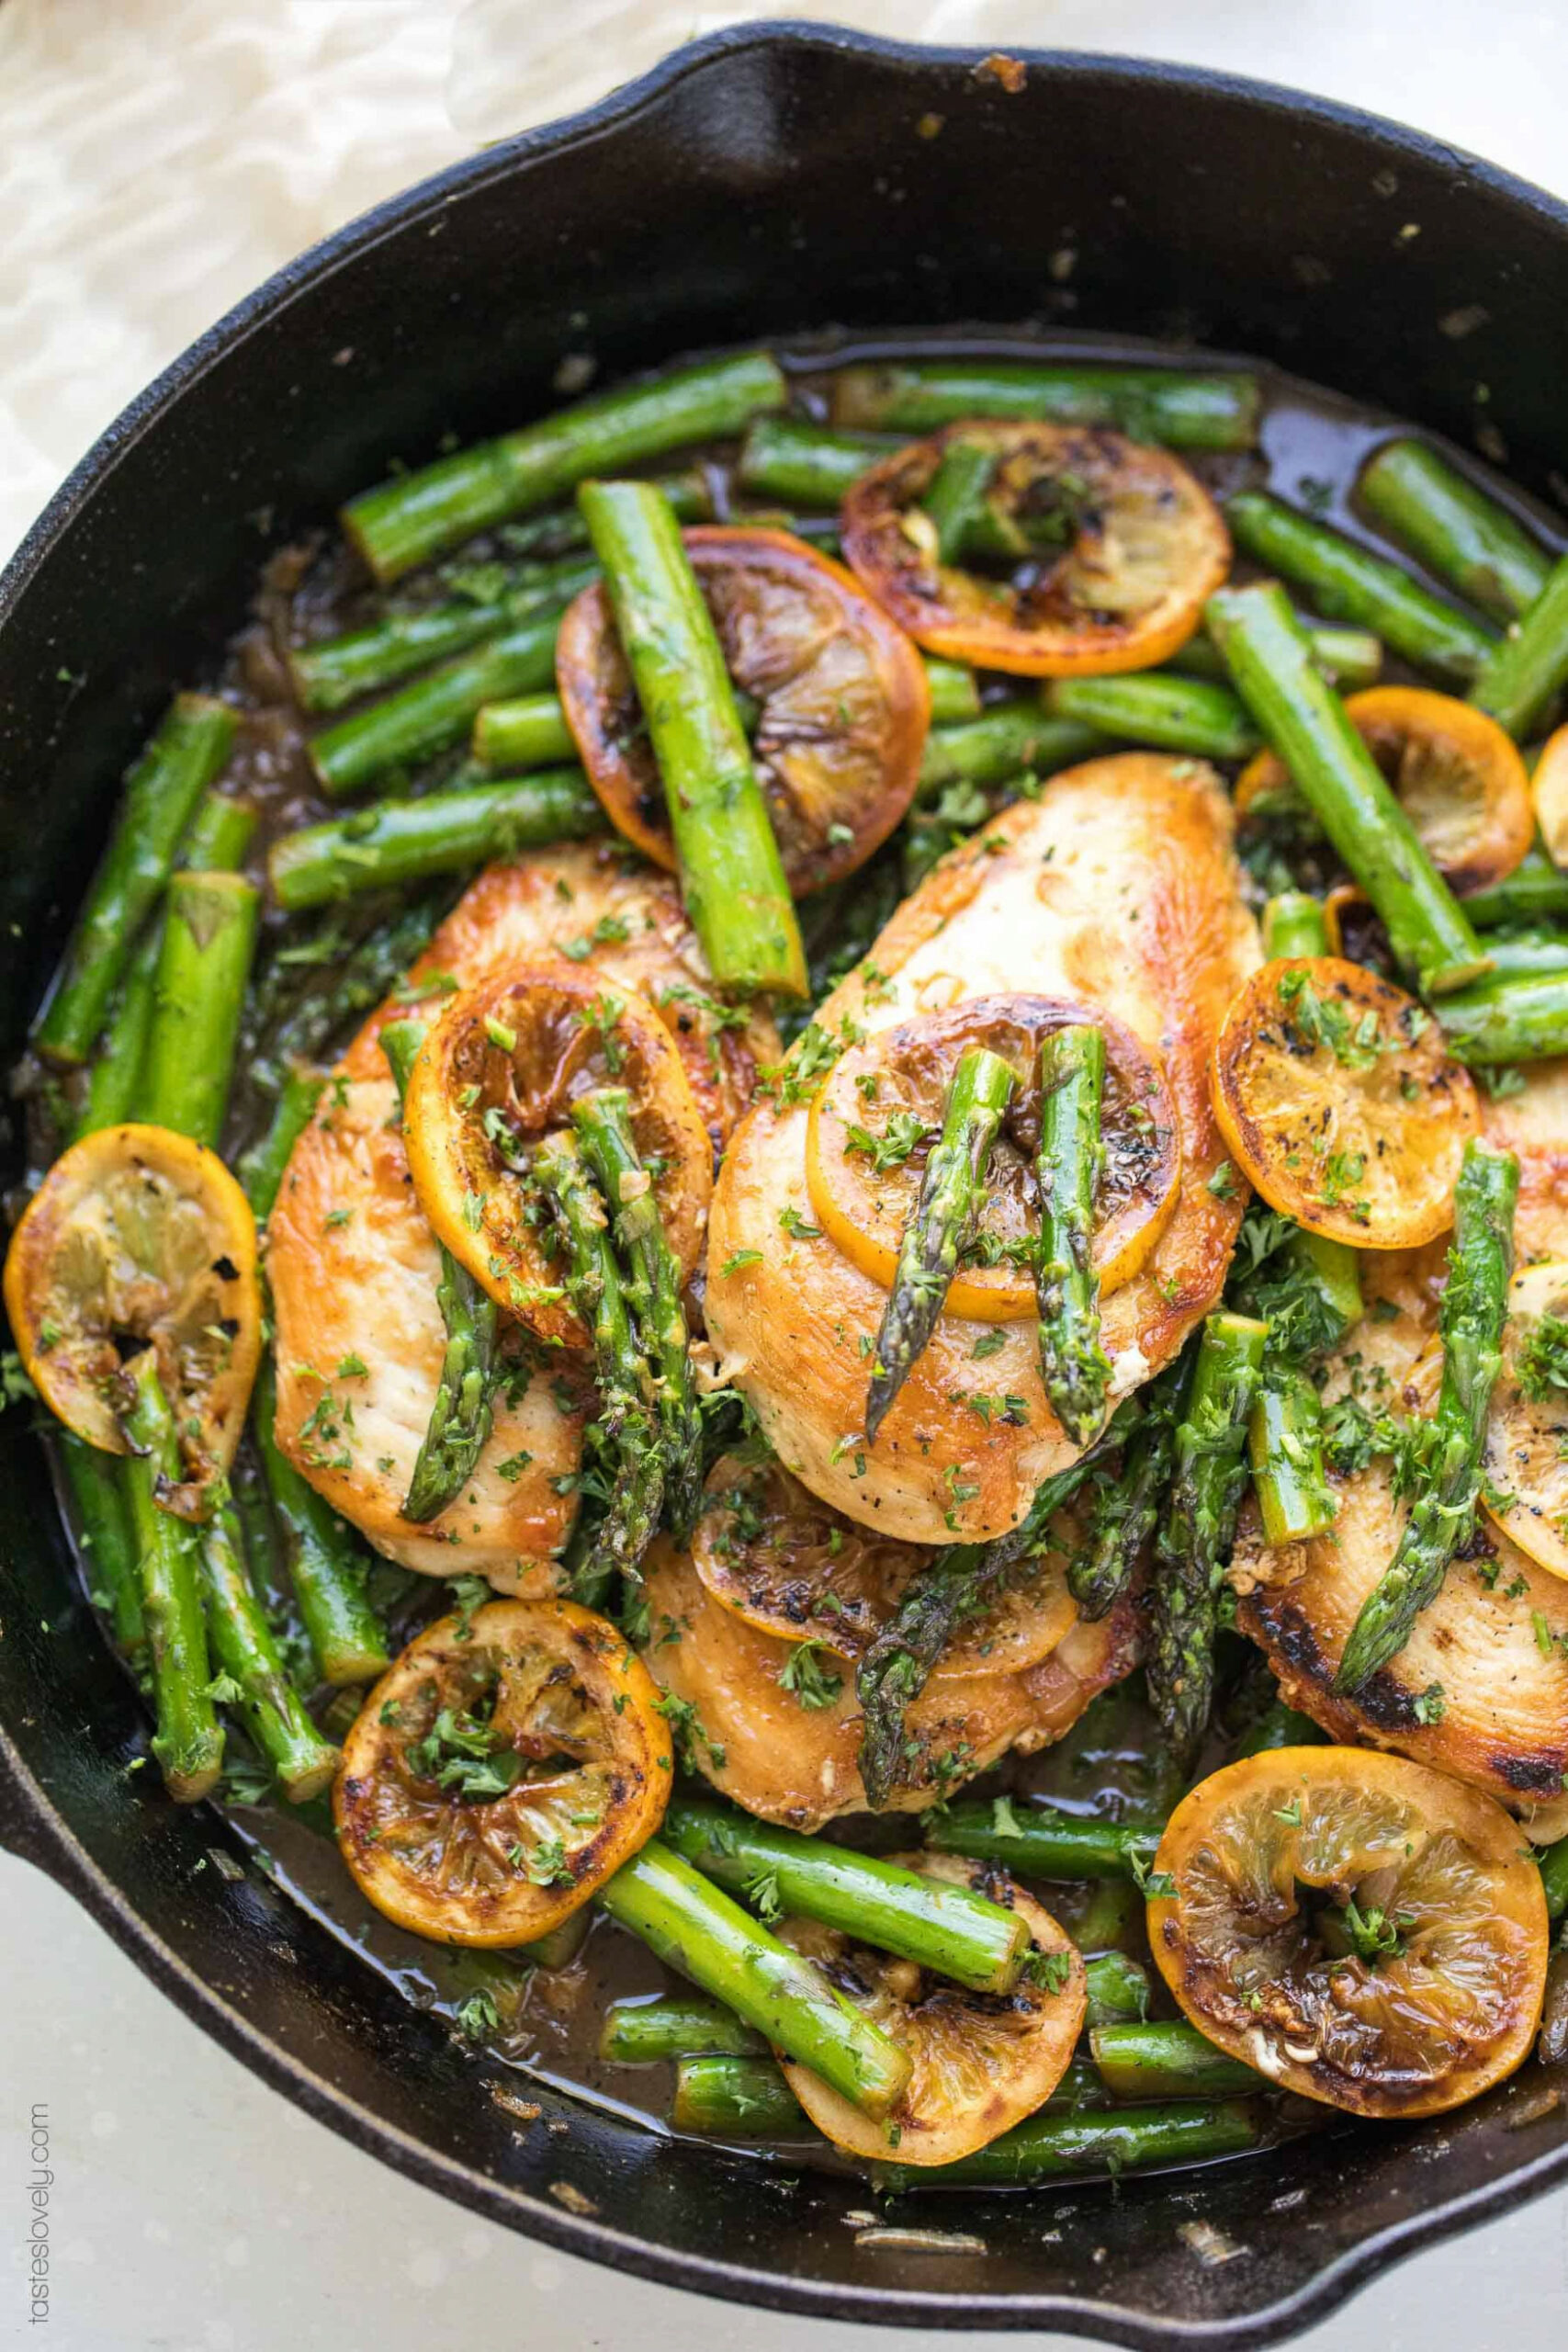 Paleo Lemon Honey Chicken & Asparagus Skillet - Tastes Lovely - dinner recipes dairy and gluten free